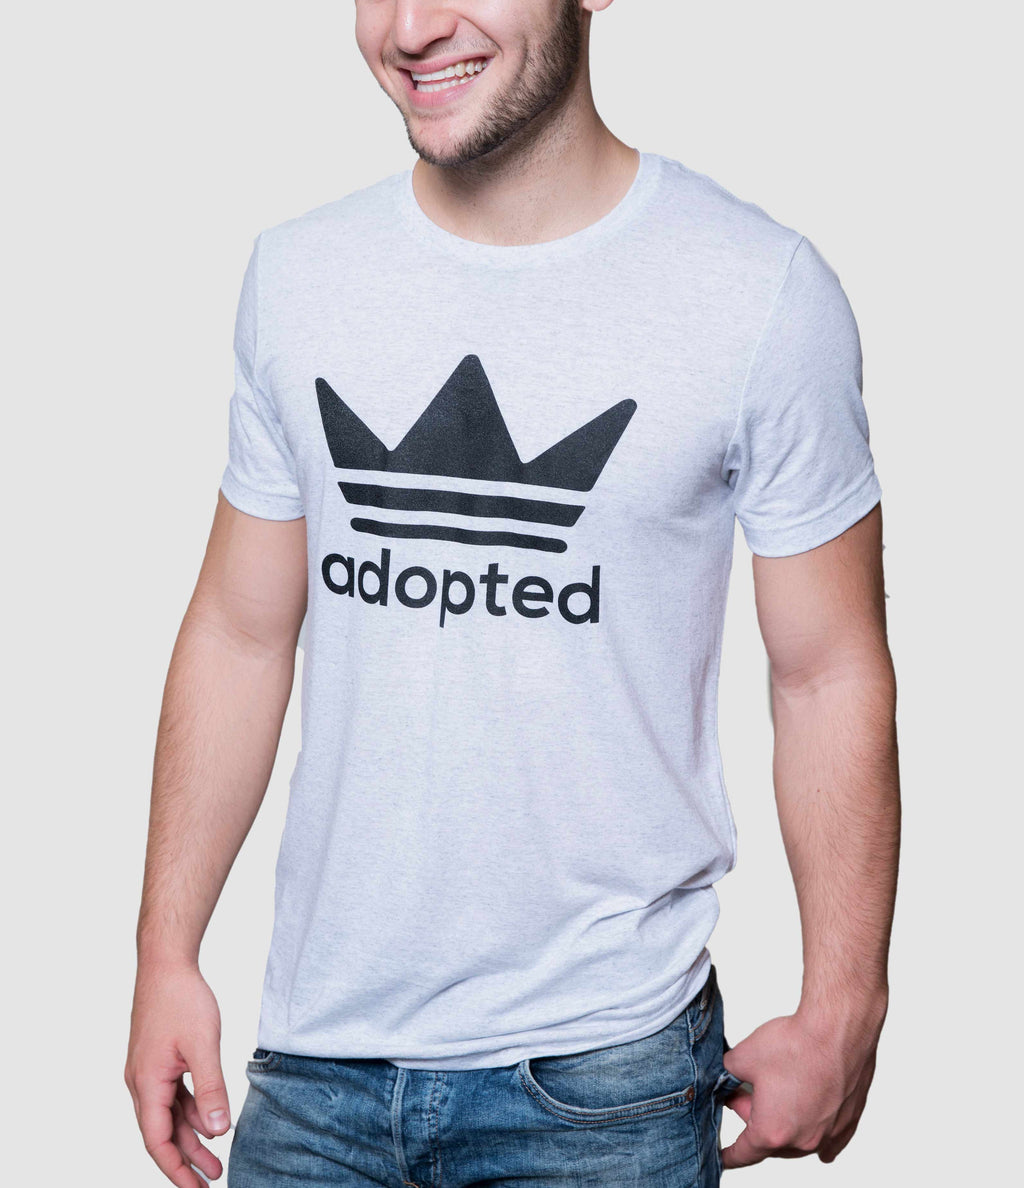 Adopted T-Shirt